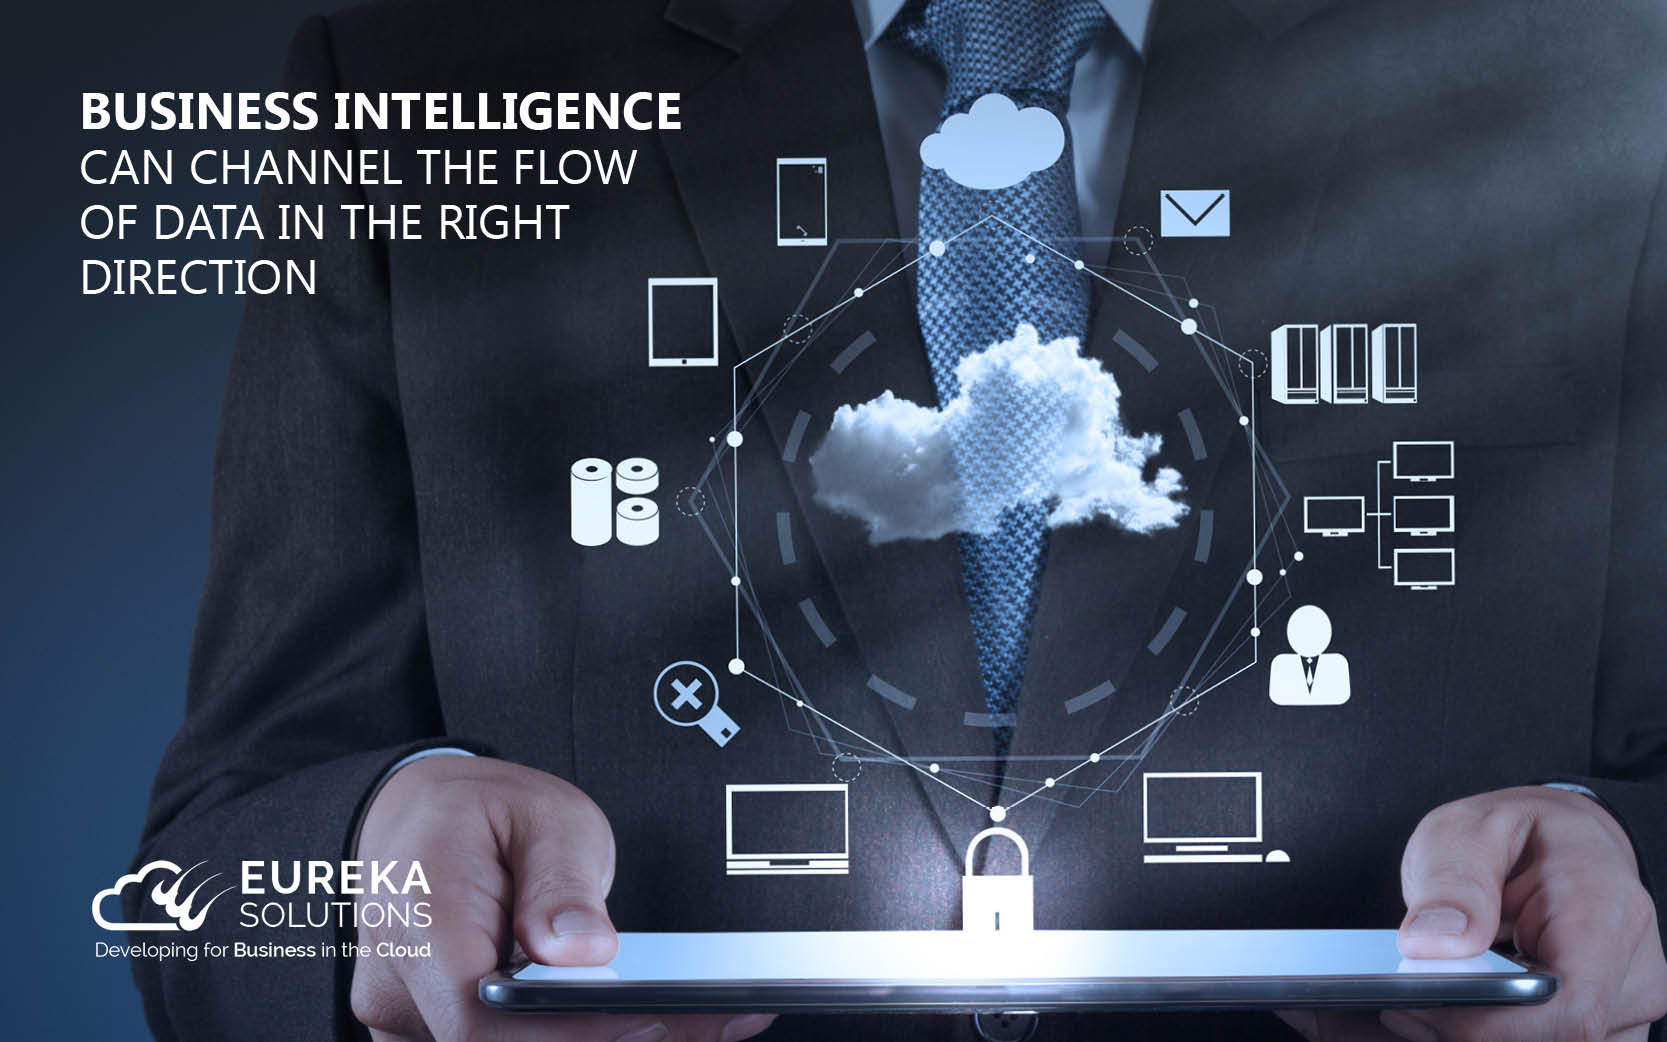 Business Intelligence Can Channel the Flow of Data in the Right Direction